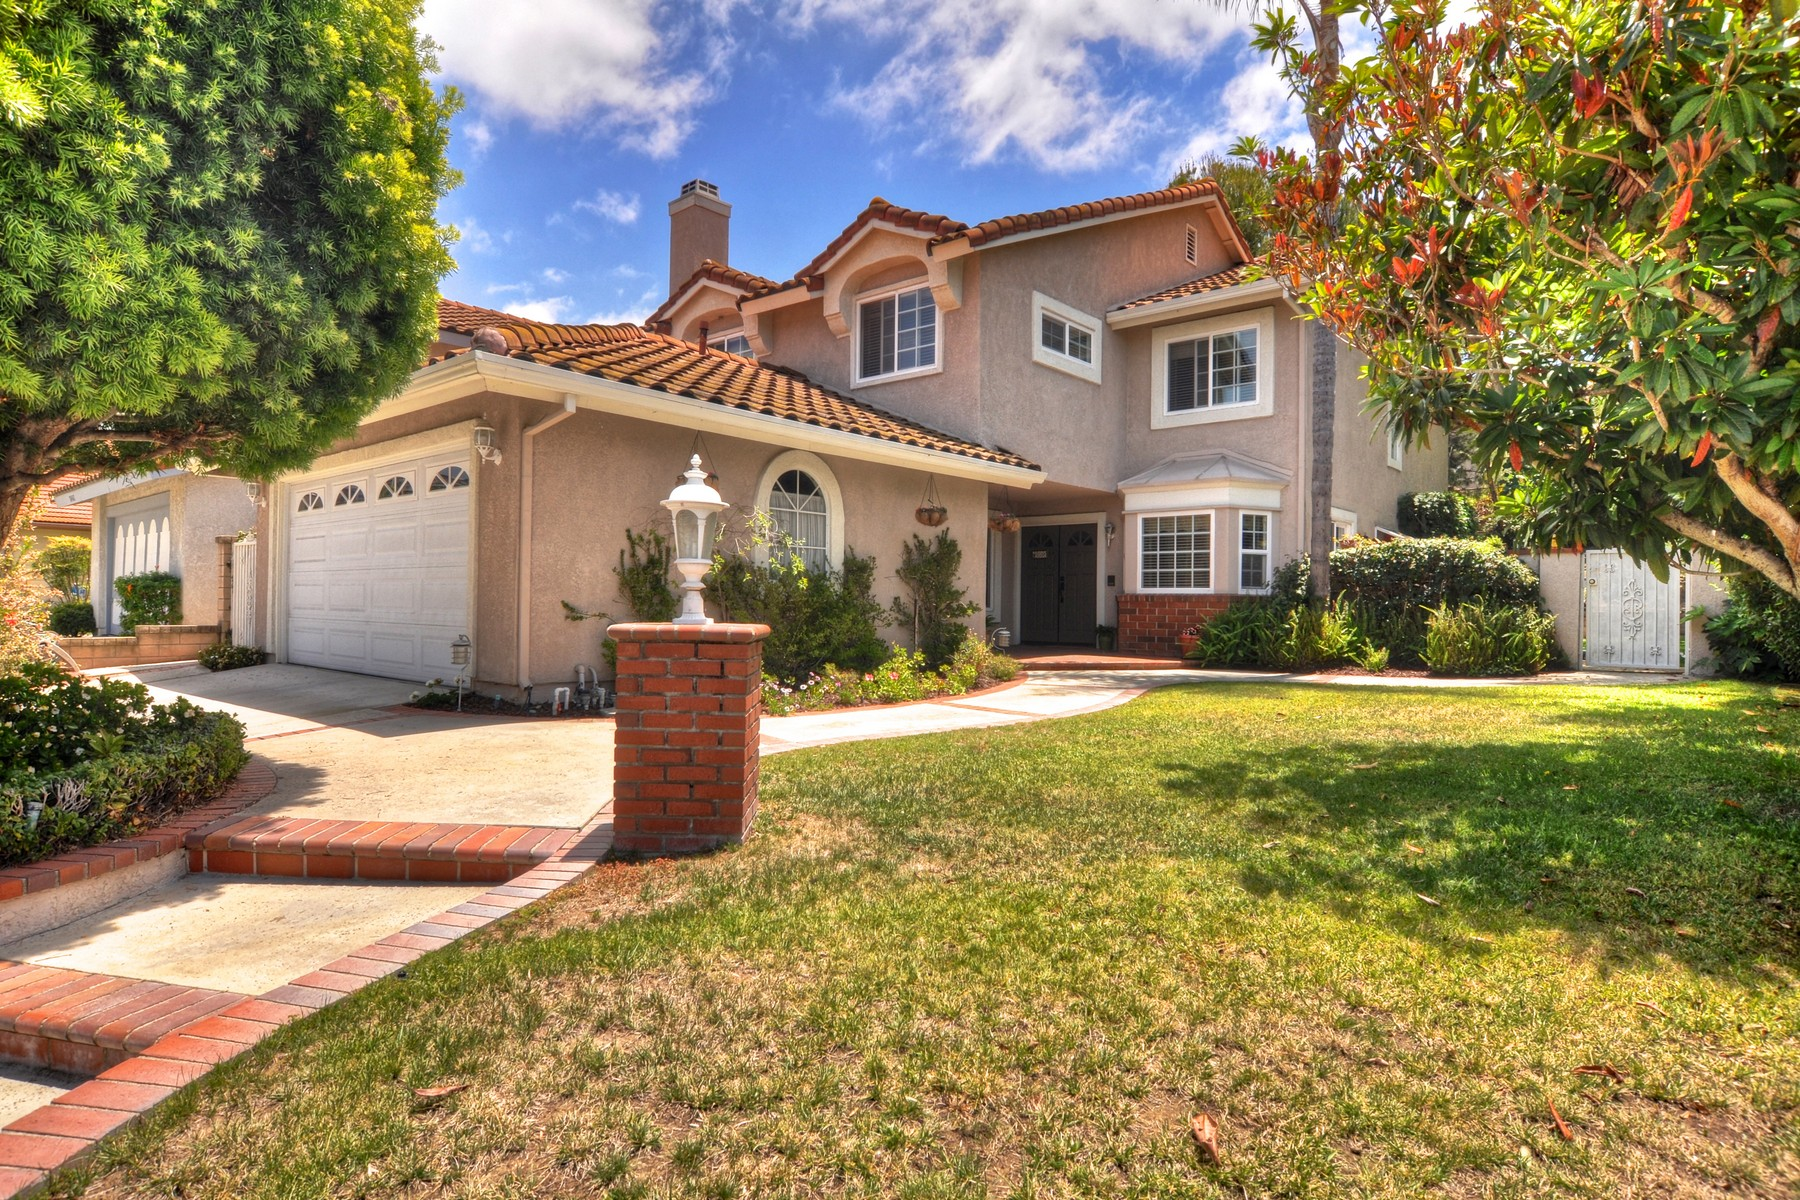 Single Family Home for Sale at 24352 Nugget Falls Lane Laguna Niguel, California 92677 United States